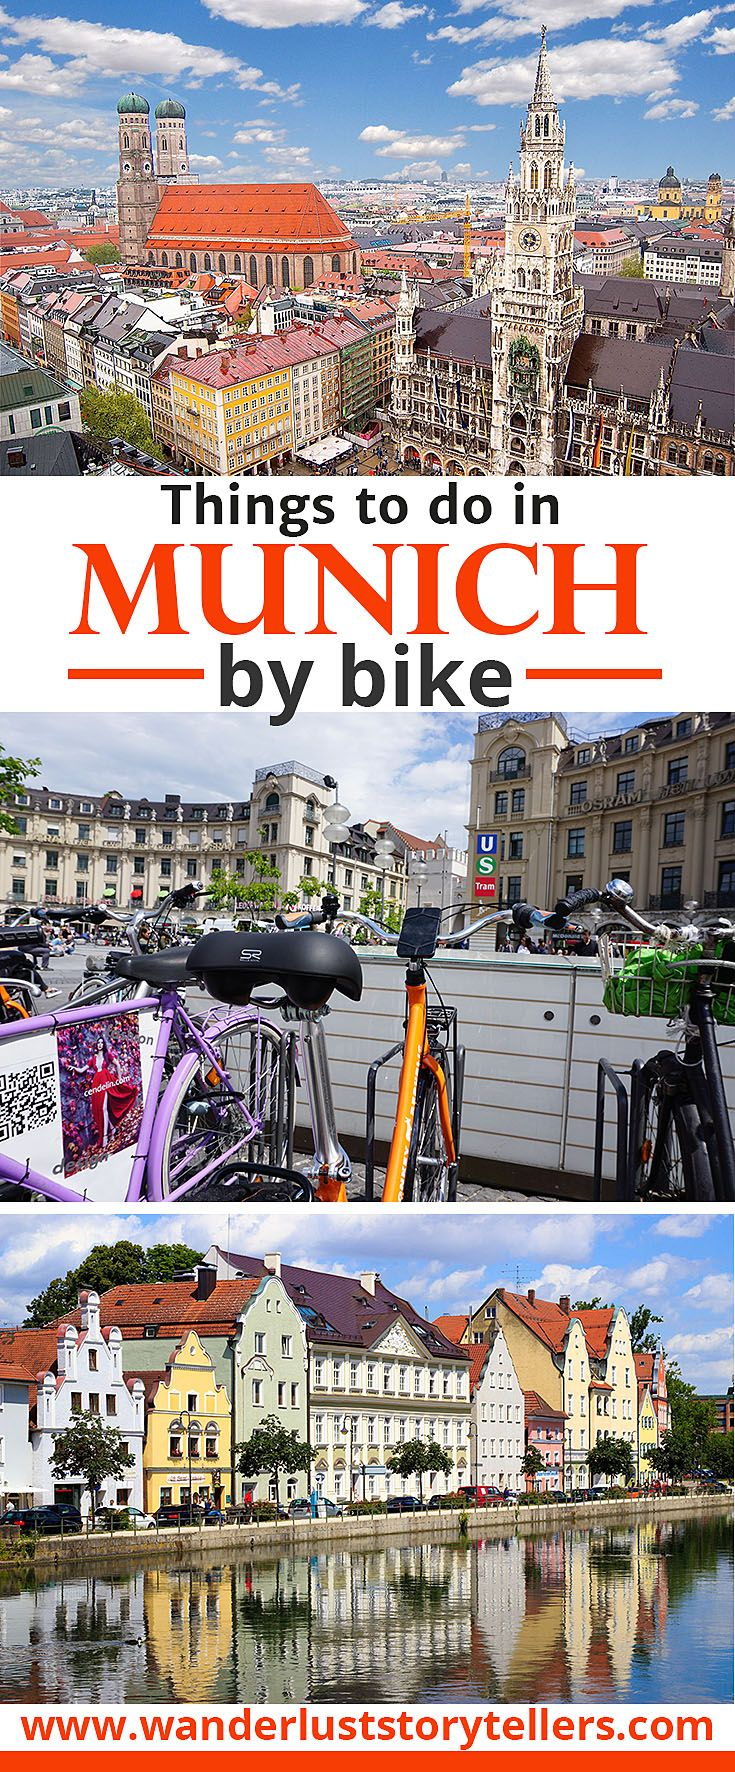 Click to read about the top things to do in Munich by bike. We have worked out a great self guided bike tour to see all the major Munich Tourist Attractions!